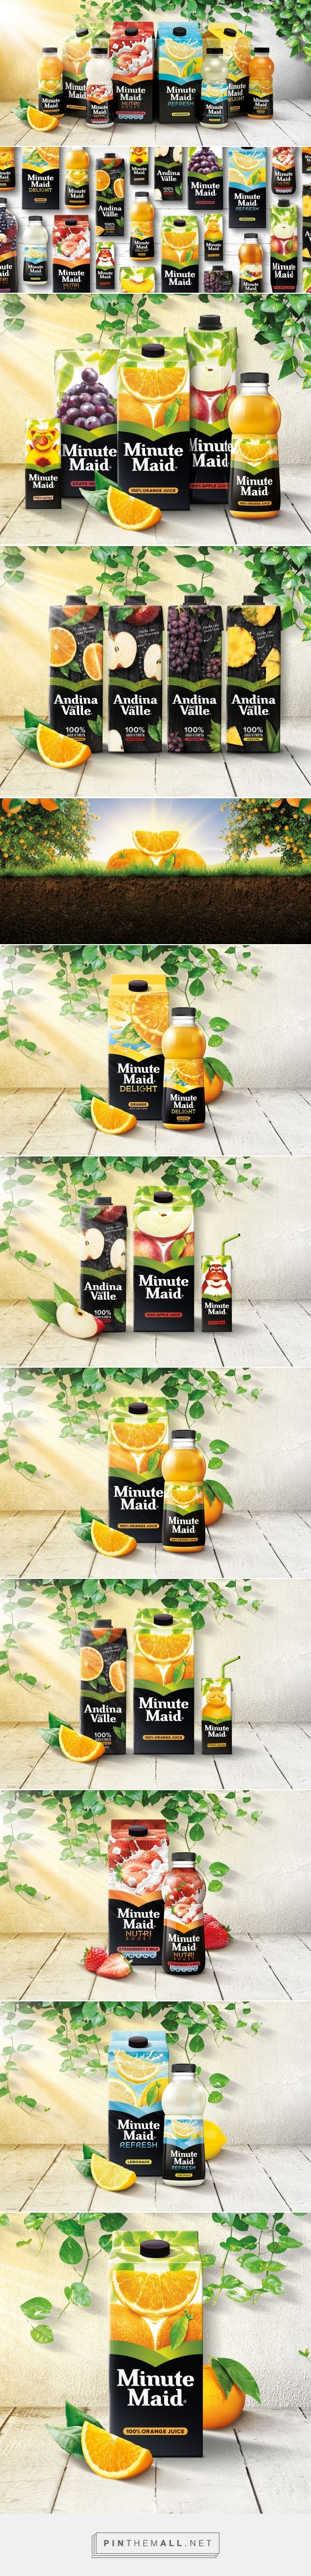 Minute Maid packaging redesign by Taxistudio - http://www.packagingoftheworld.com/2017/07/minute-maid-creation-of-coherent-global.html - created via https://pinthemall.net